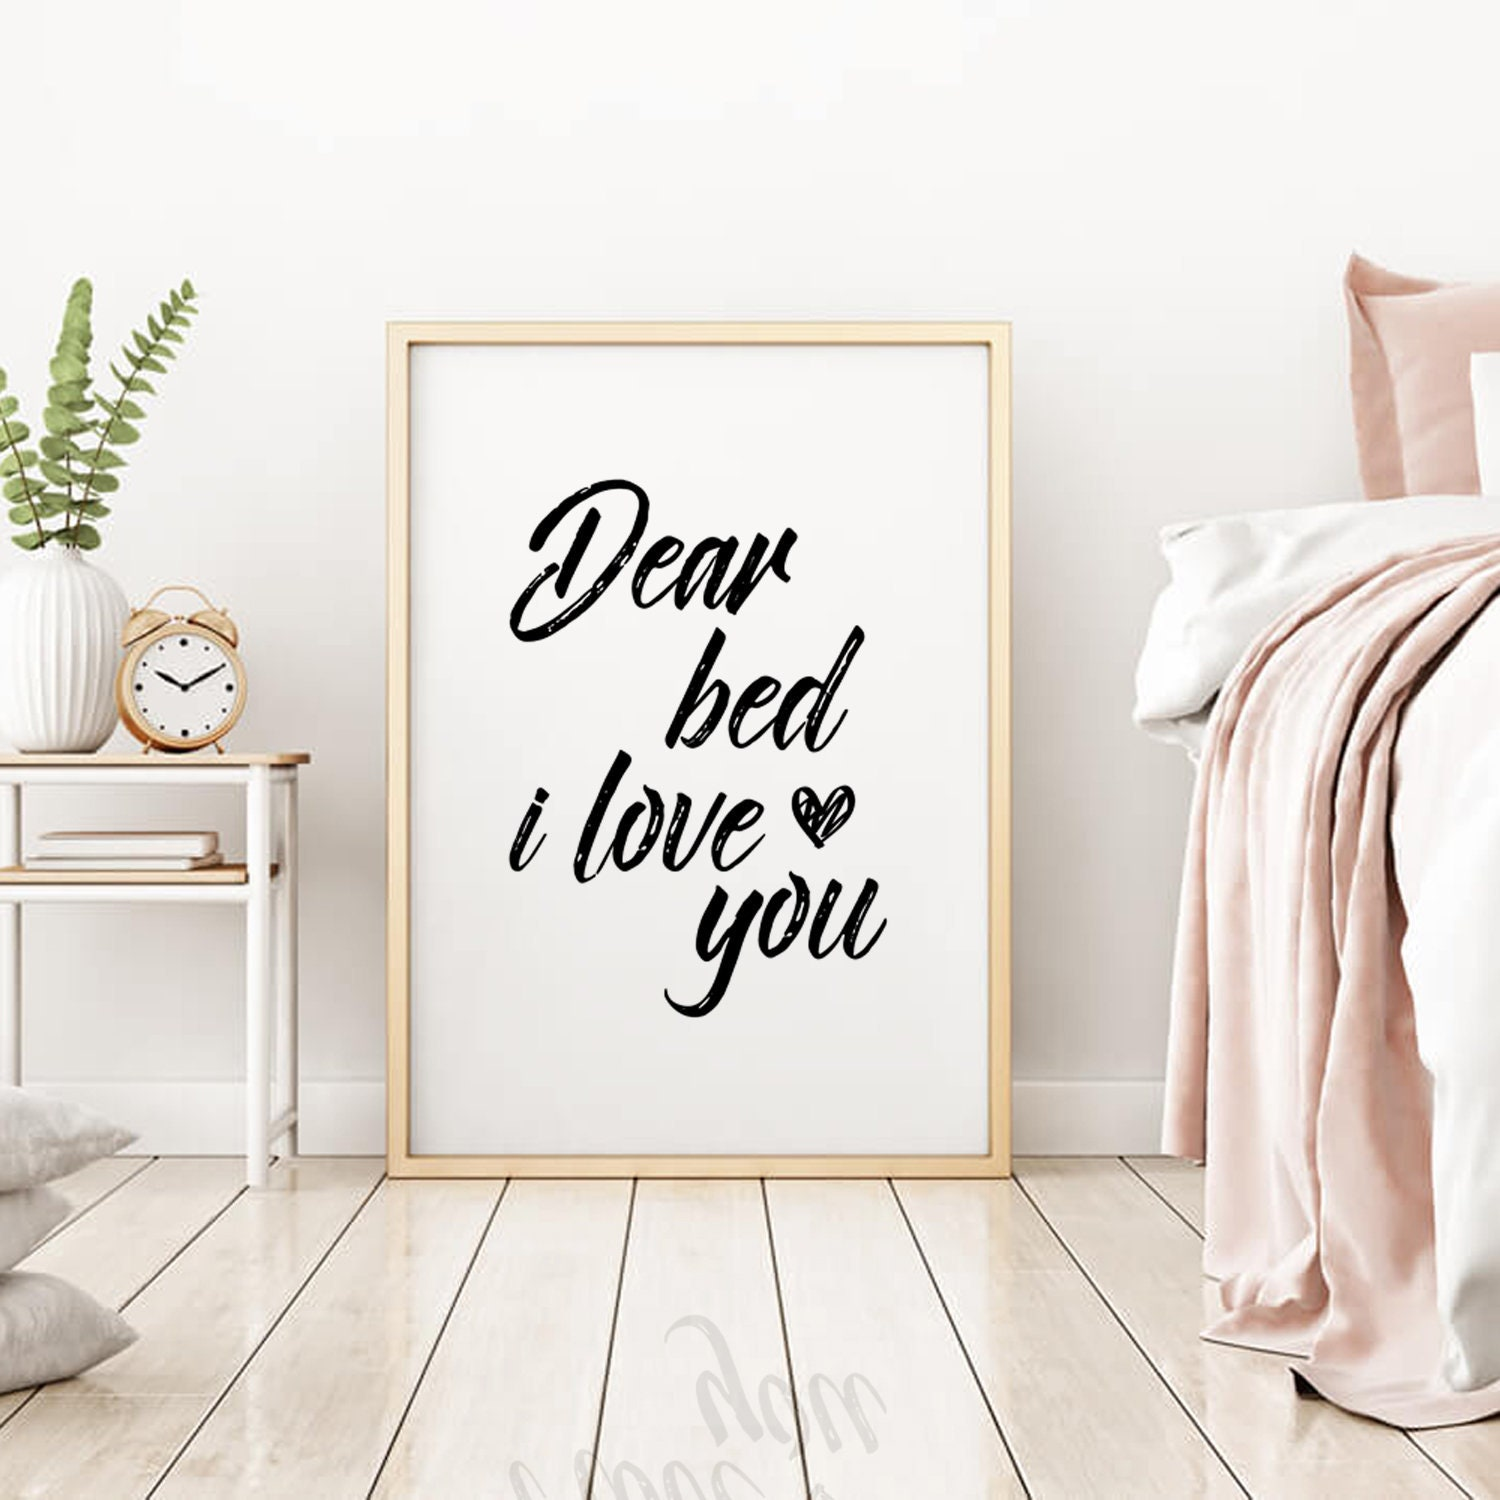 Bedroom Wall Decor Bedroom Wall Art Dear Bed I Love You Bedroom Sign Digital Download Above Bed Sign Funny Quote Prints Bed Print